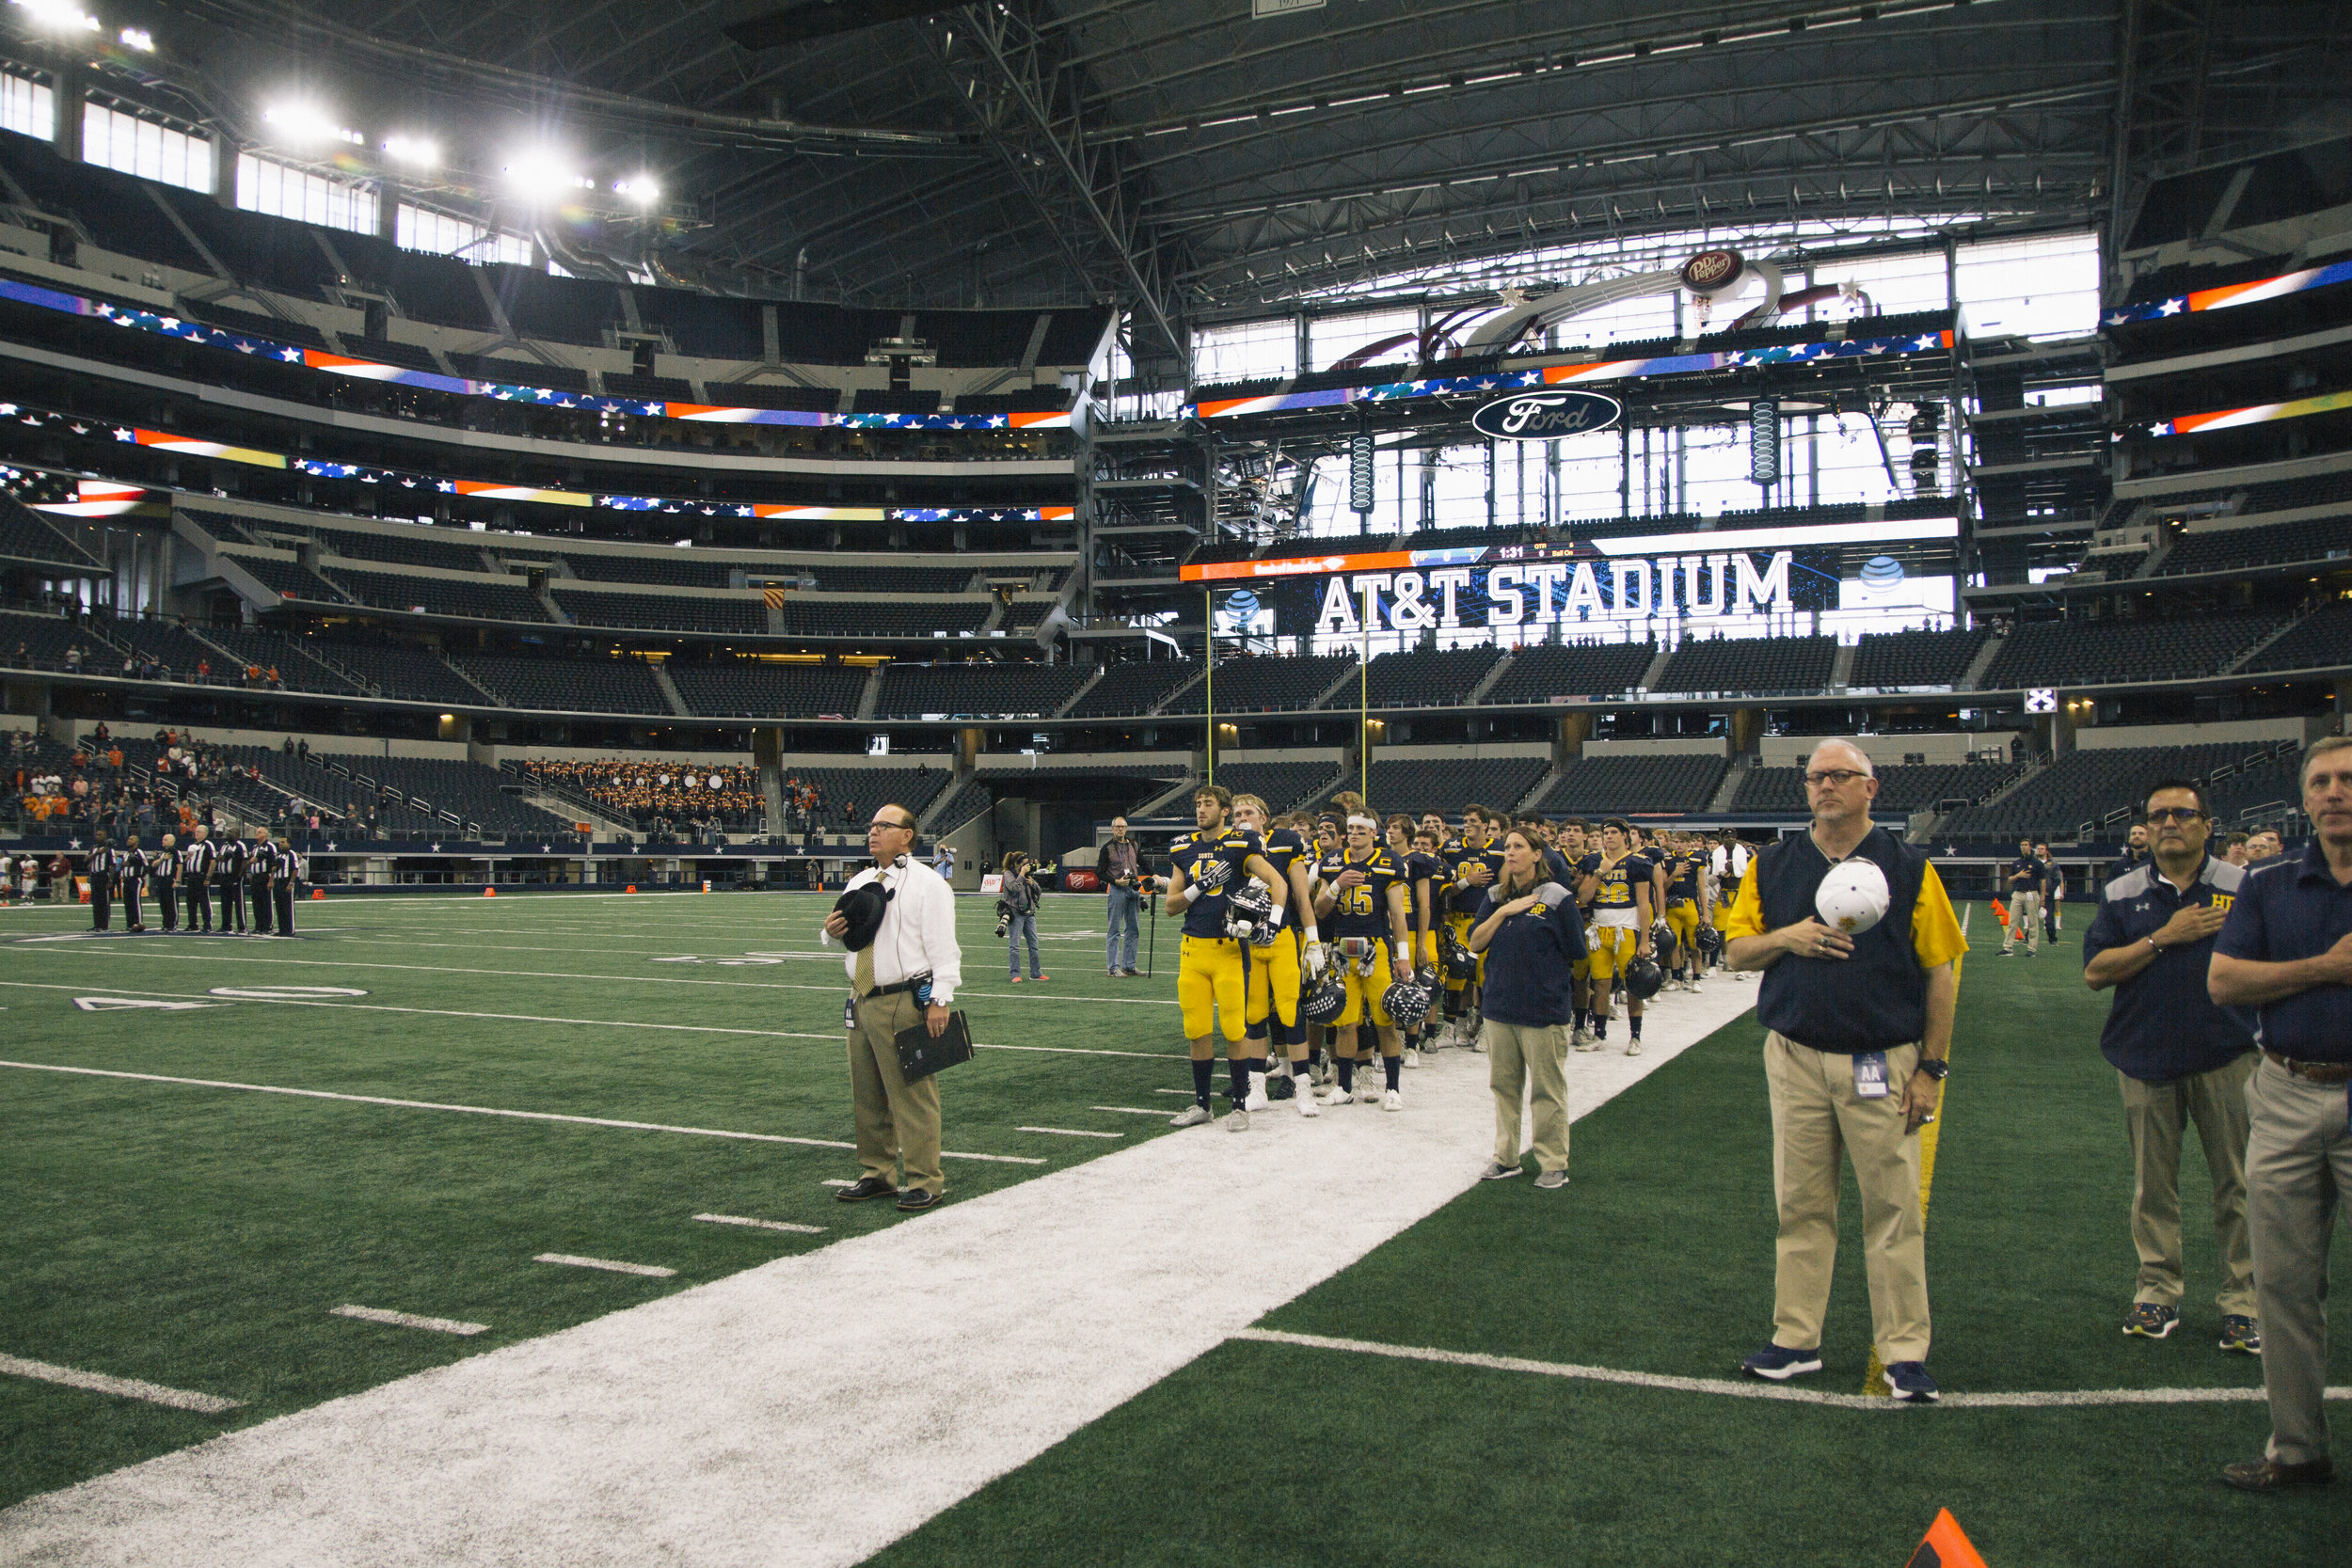 Head Coach Randy Allen (white shirt) is the Don Shula National High School Coach Of The Year 2016. He has the 4th most wins of any coach in Texas, 2nd most wins of any active Texas coach and he is one of ten Texas coaches who has won over 300 games and is currently at just over 350! He also coached Matthew Stafford (current QB1 for the Detroit Lions) in 2005 to win the 4A state title.